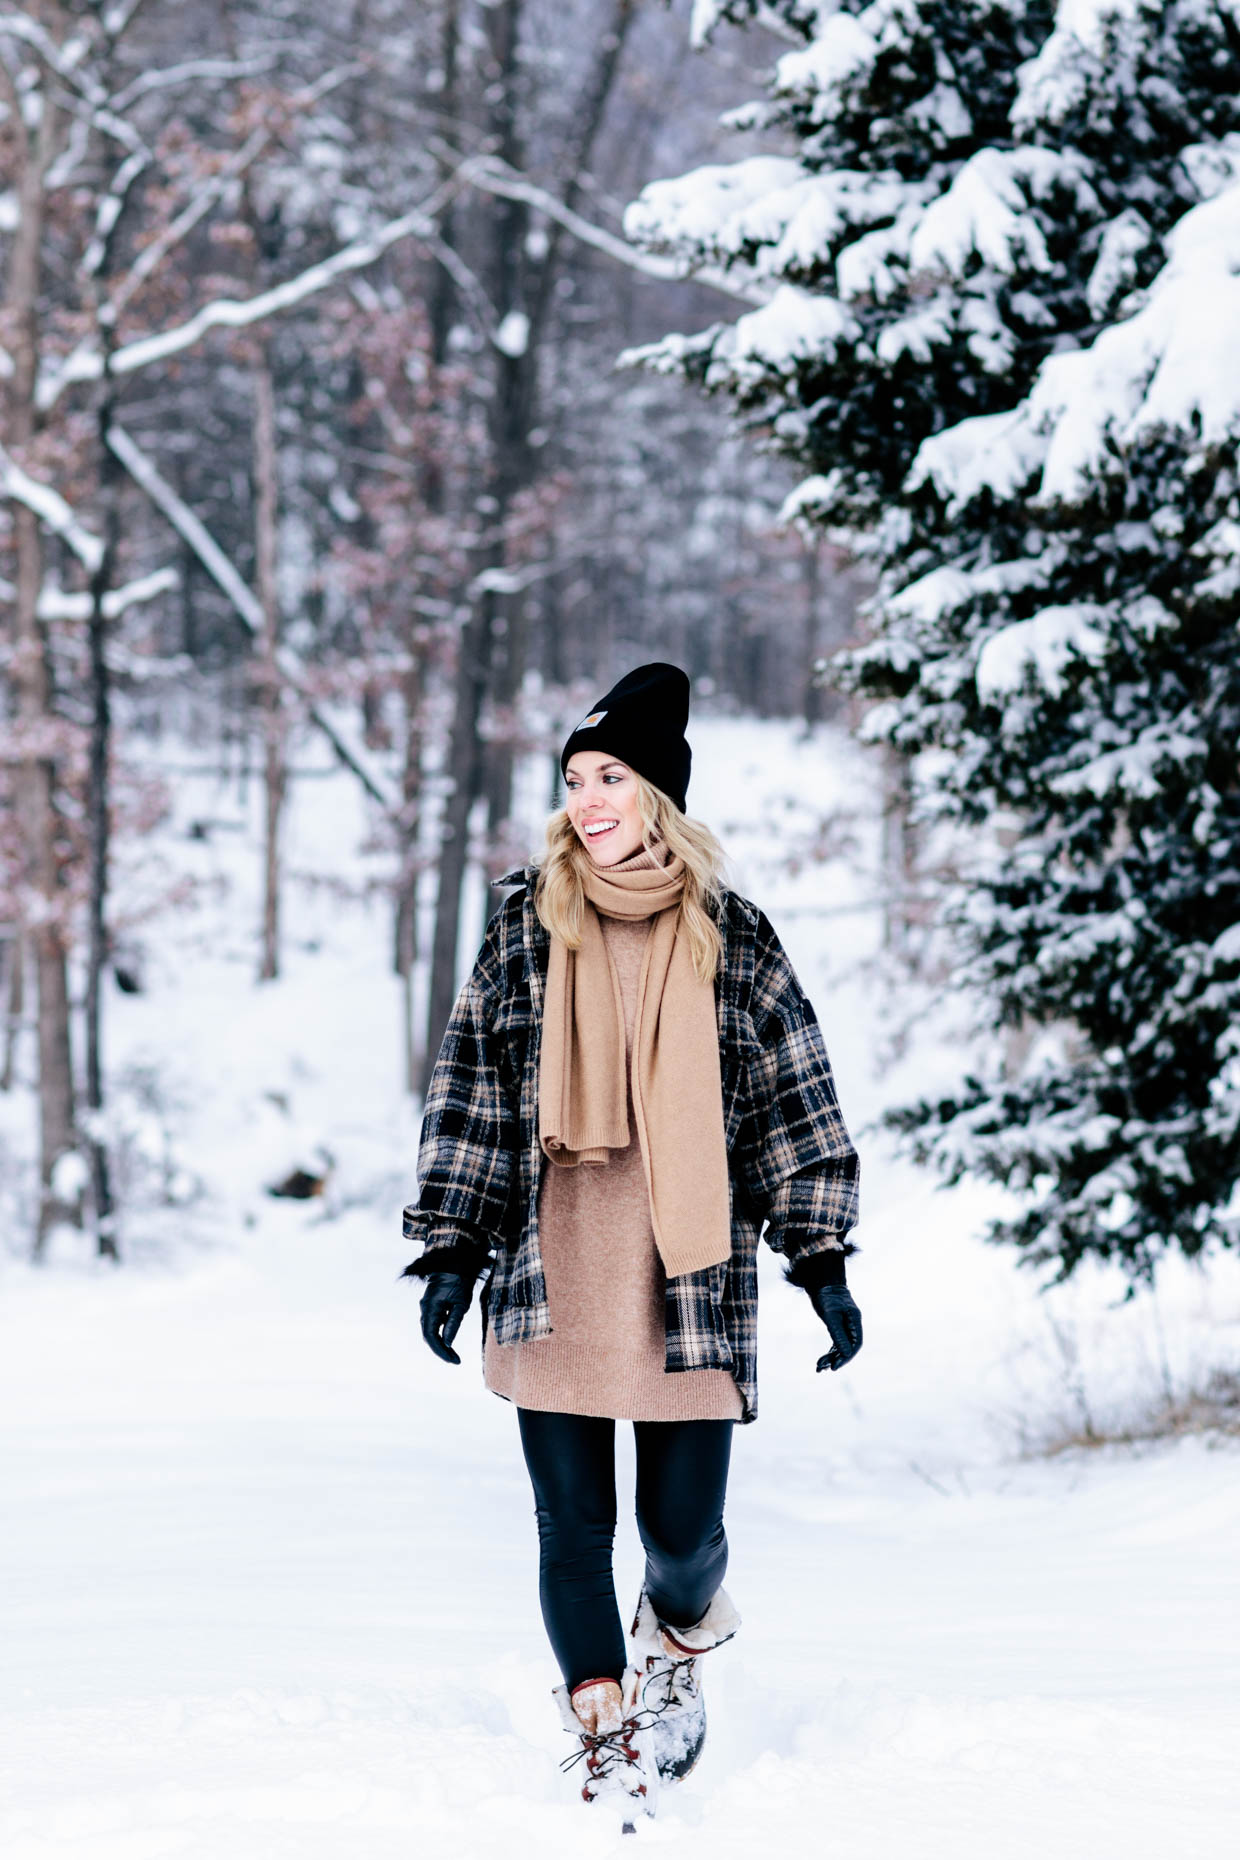 Meagan Brandon fashion blogger of Meagan's Moda wears Chicwish plaid shacket with camel scarf, Plush fleece lined faux leather leggings winter outfit